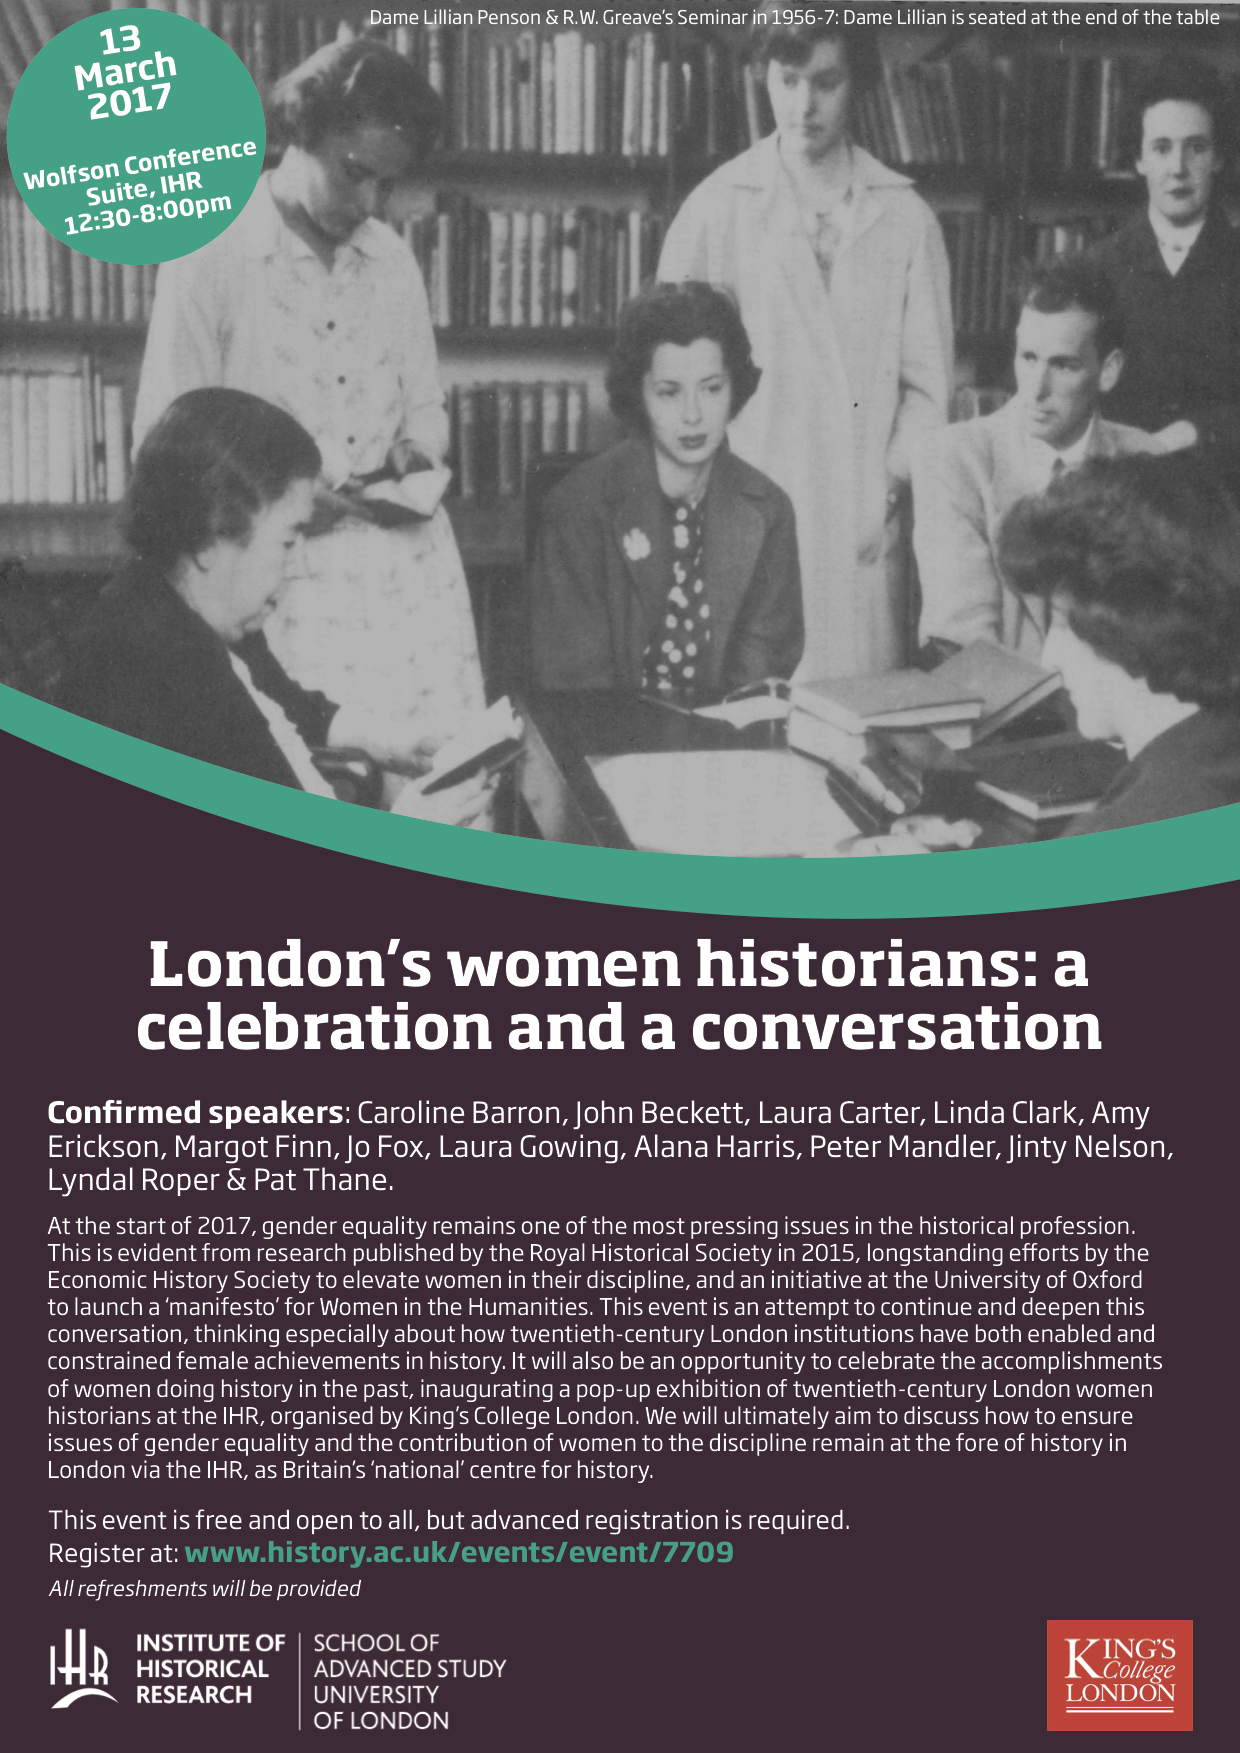 London's women historians 13 March 2017